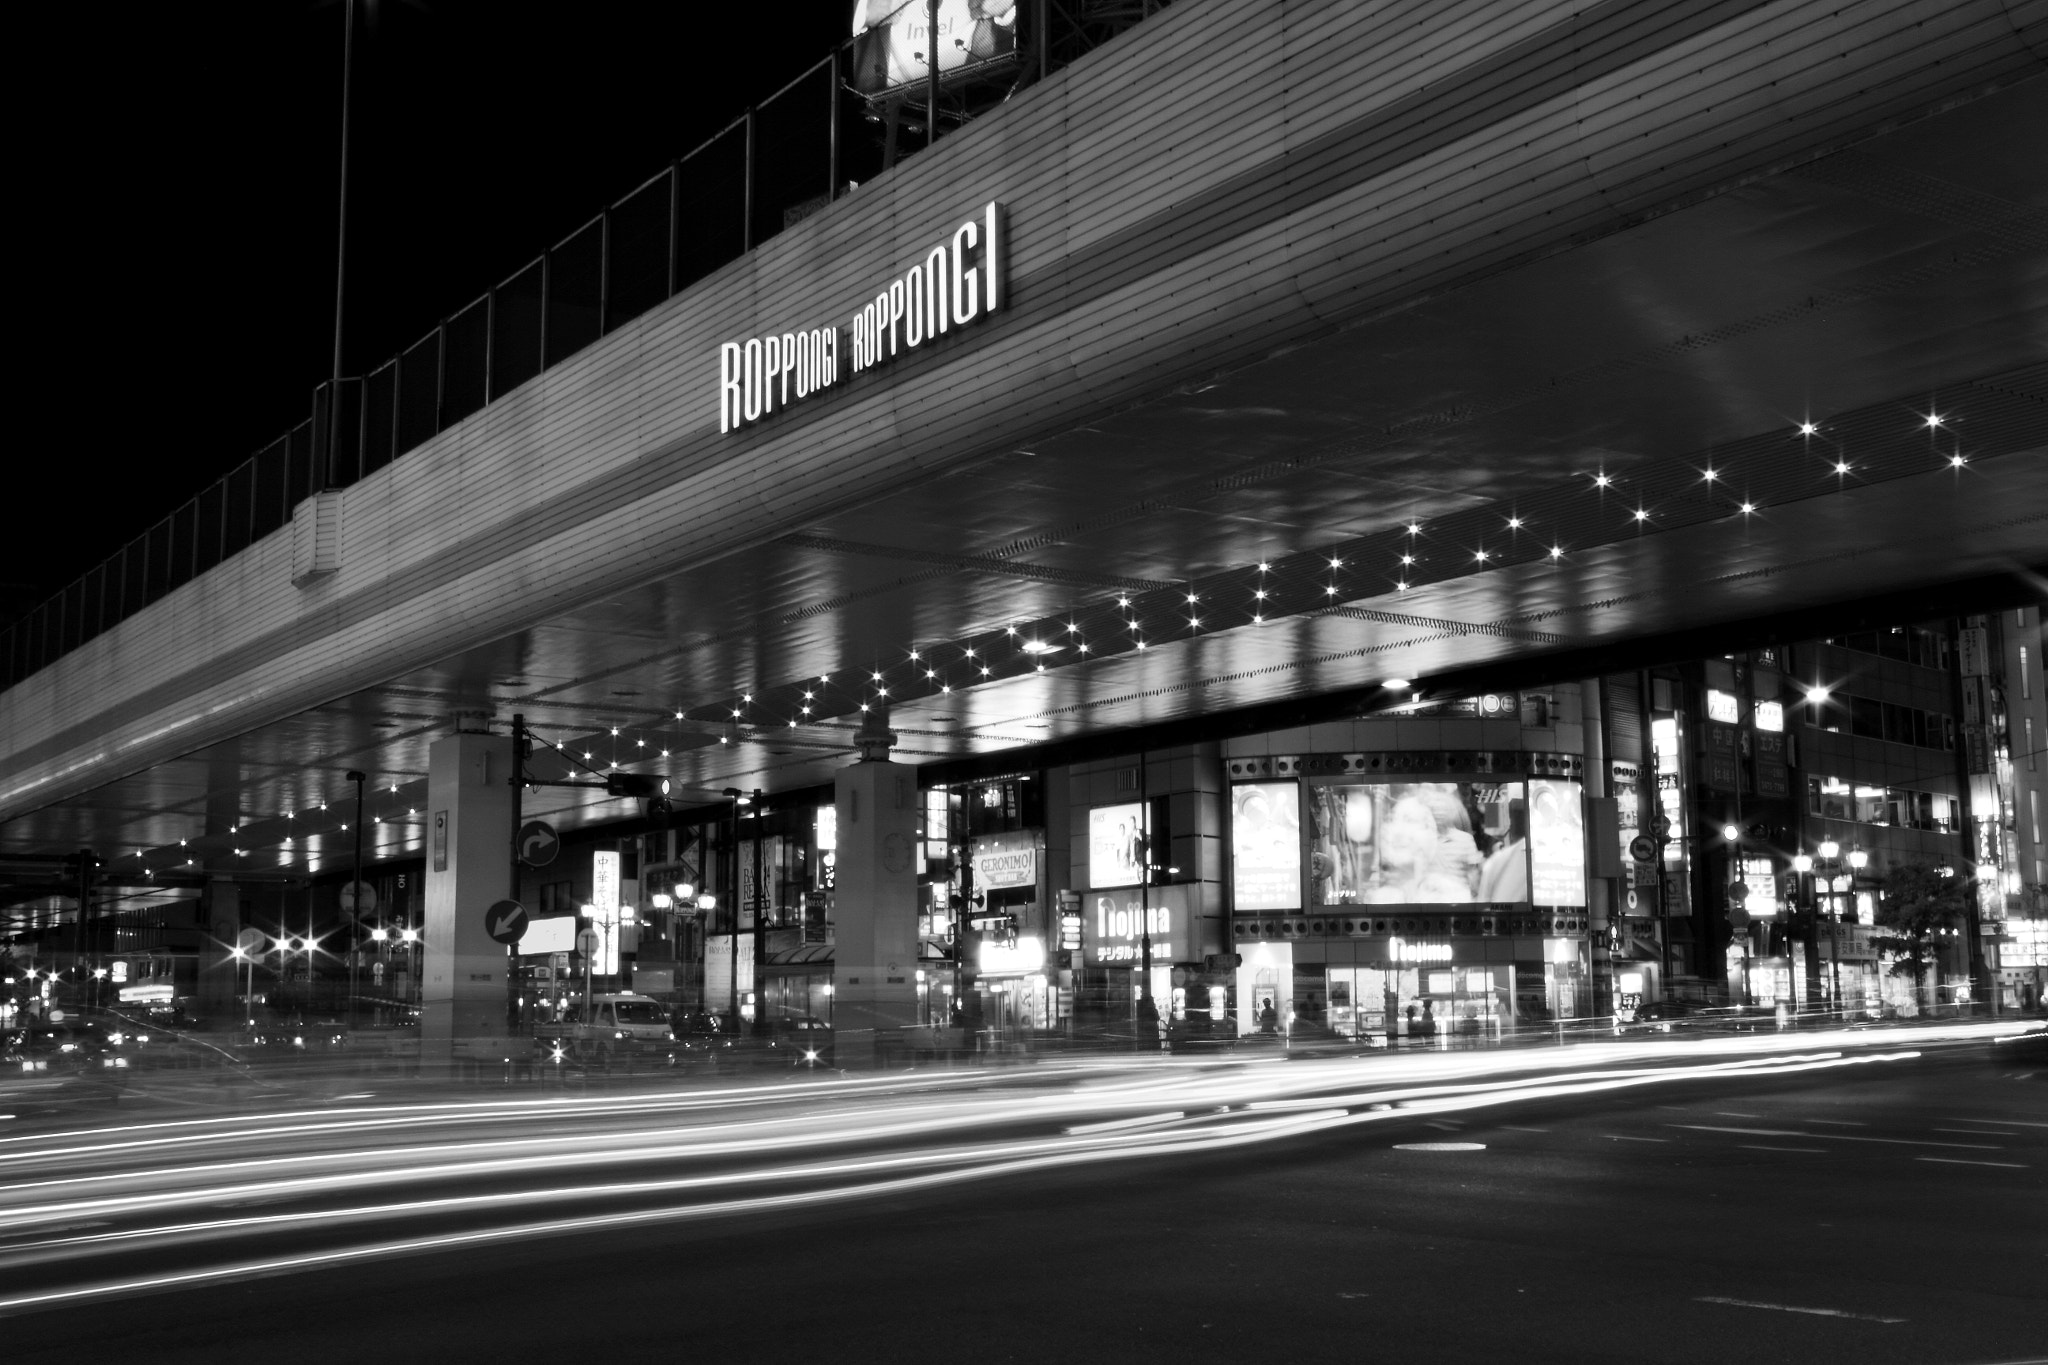 Photograph Roppongi Street by Ka Ngsm on 500px